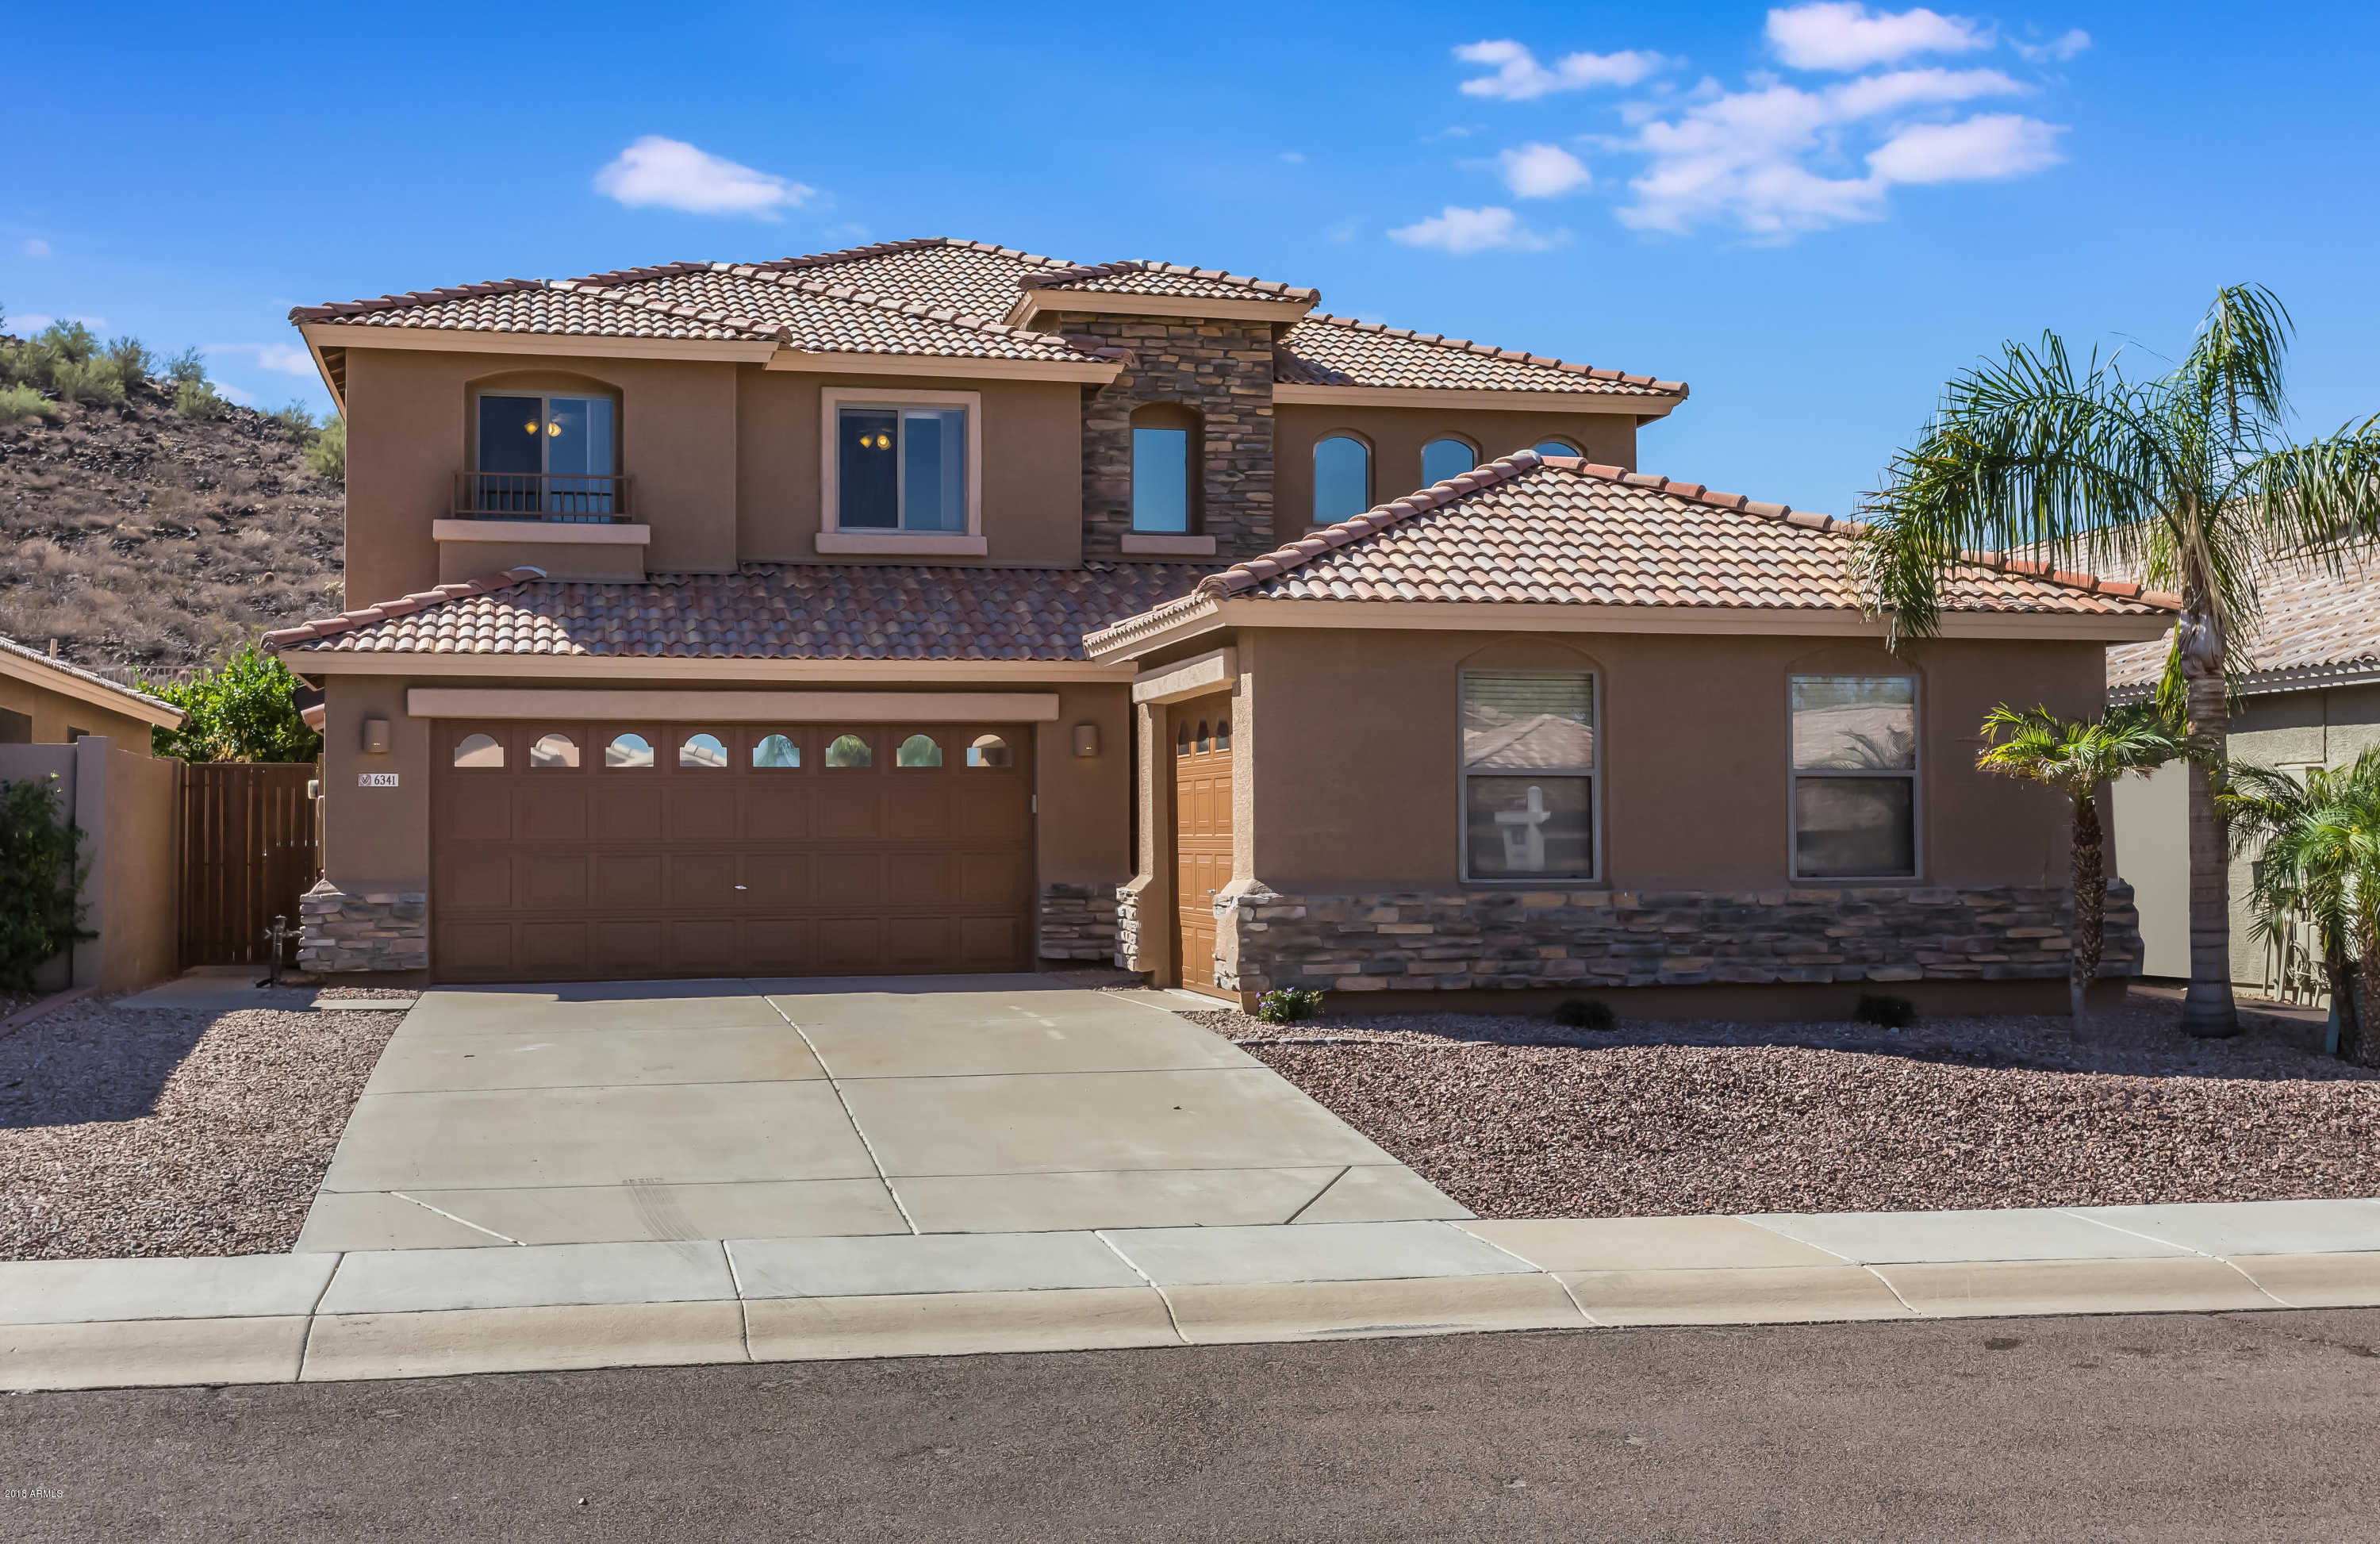 $355,000 - 4Br/3Ba - Home for Sale in Happy Valley Estates, Glendale